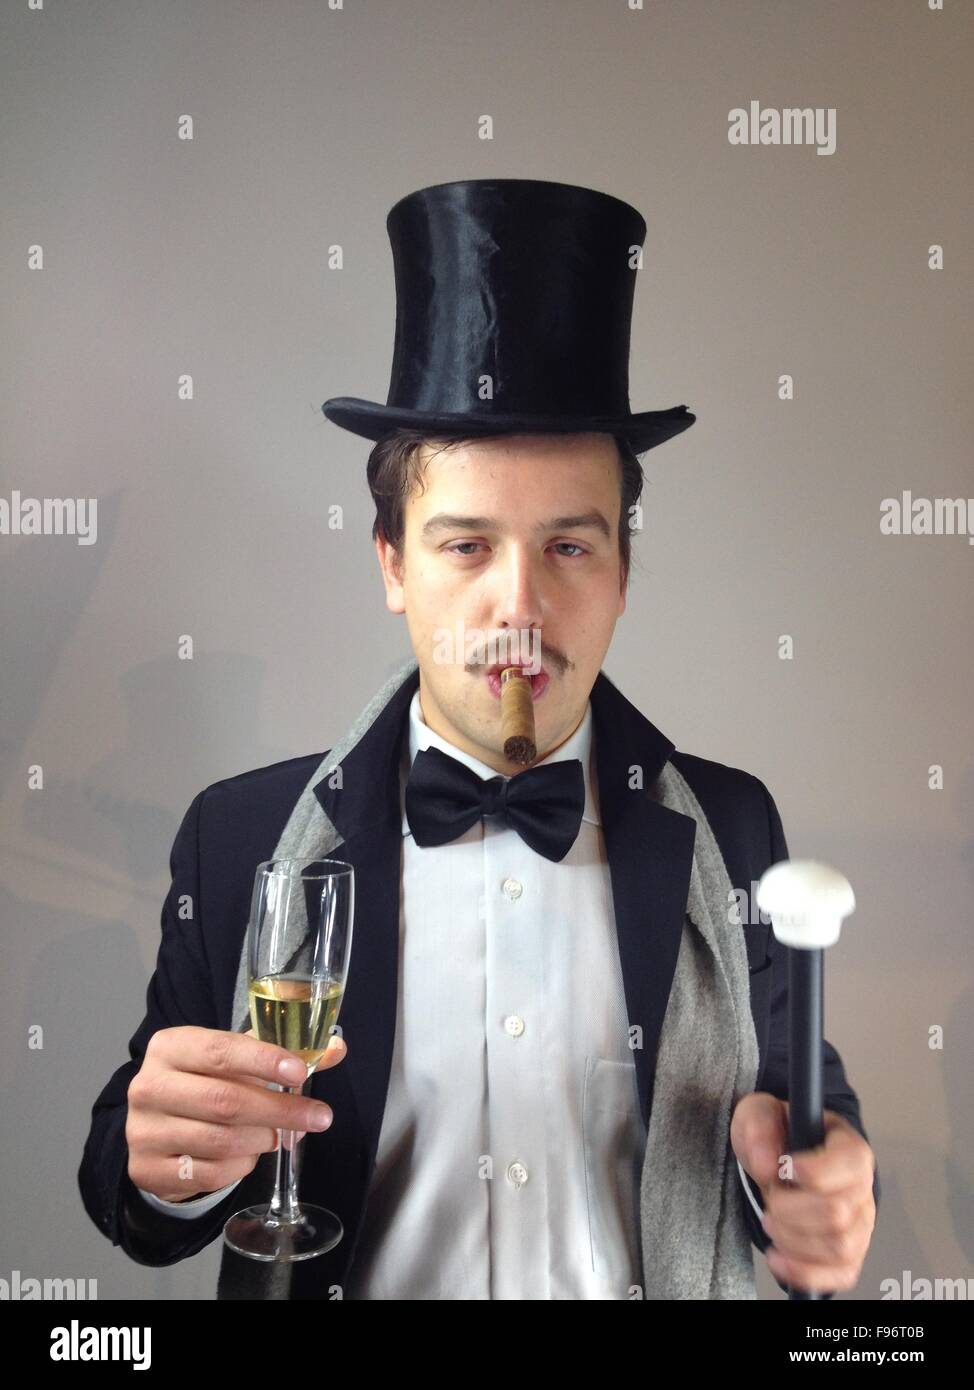 59349dee451 Man With Top Hat And Cigar Stock Photo  91734283 - Alamy